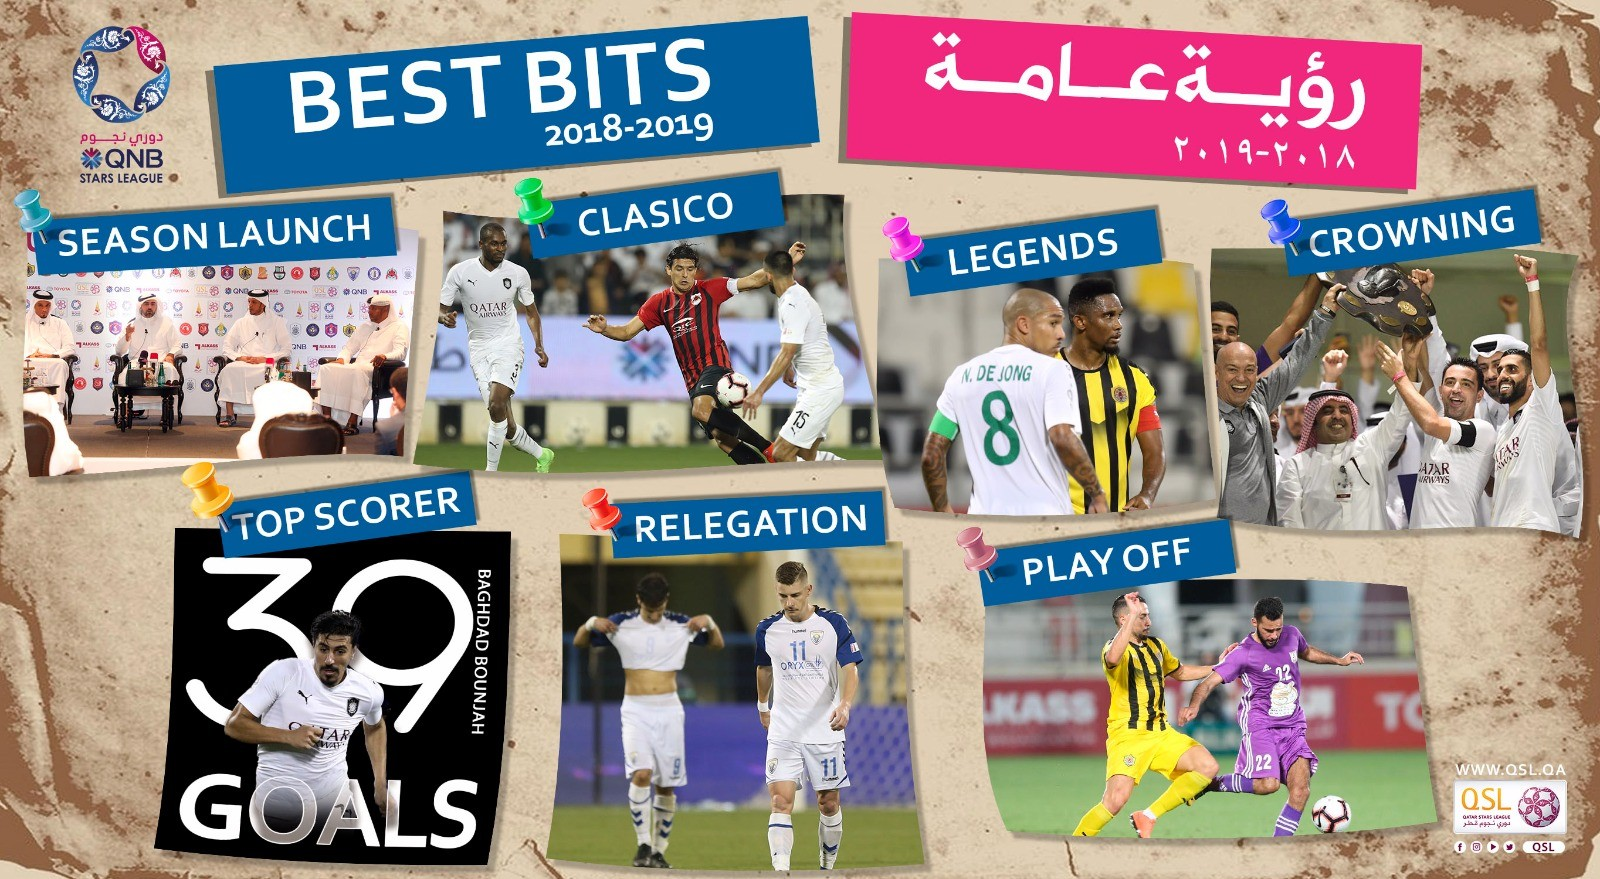 Highlights of QNB Stars League 2018-19